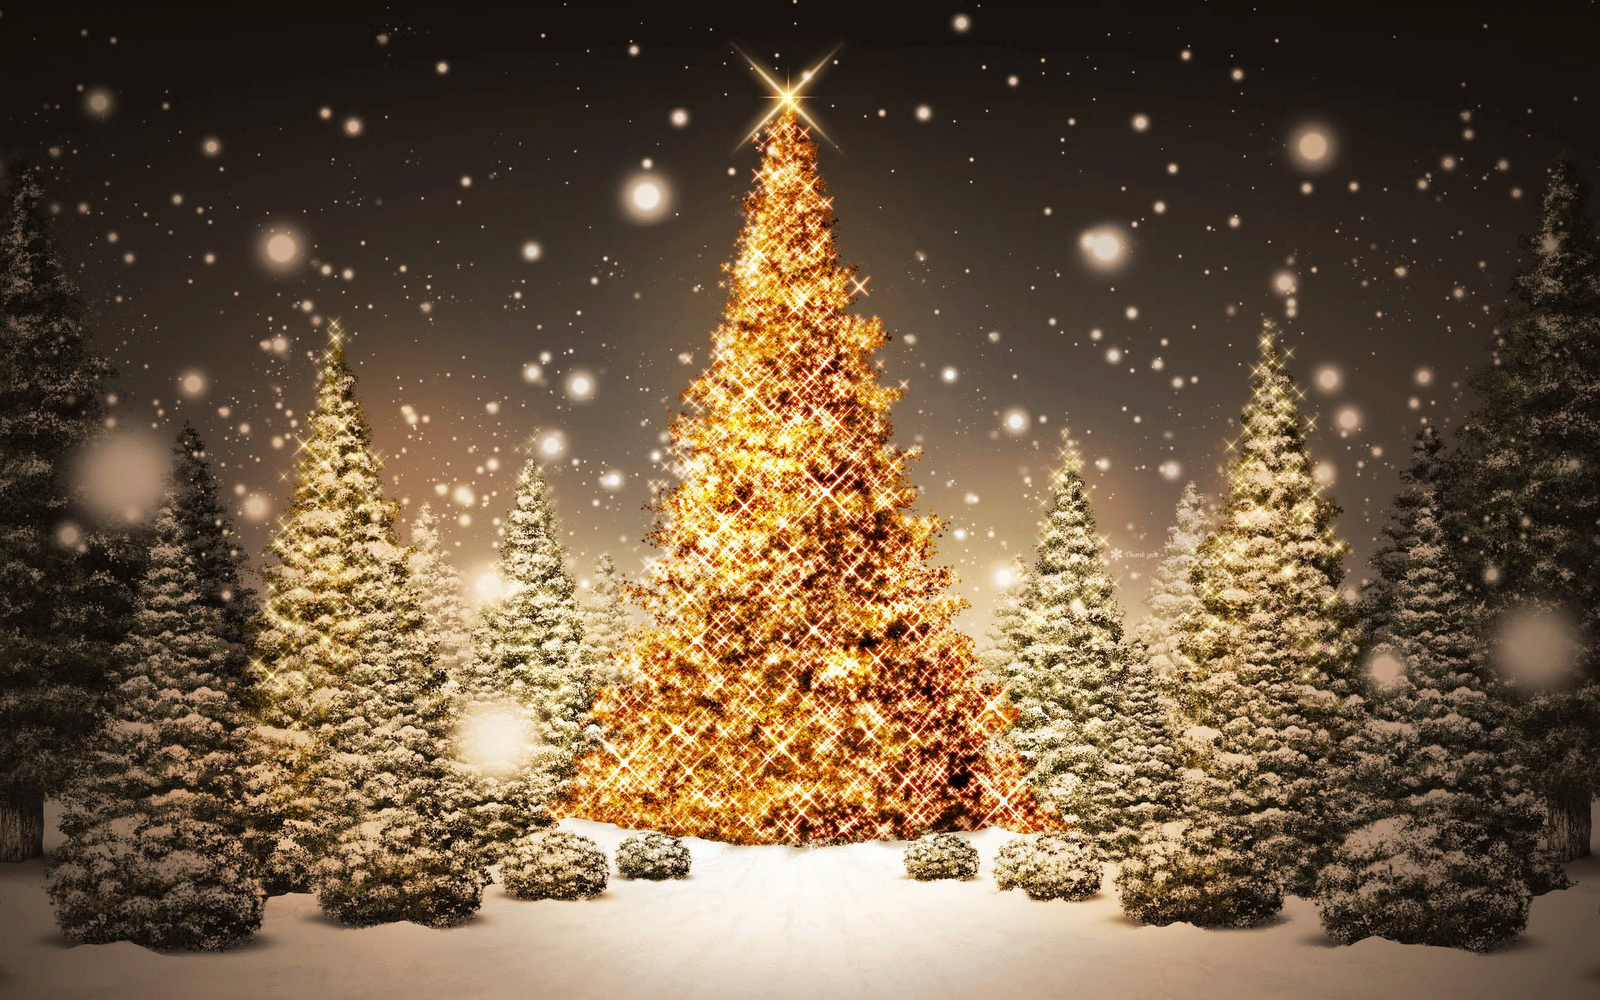 Best Desktop HD Wallpaper - Christmas lights wallpapers